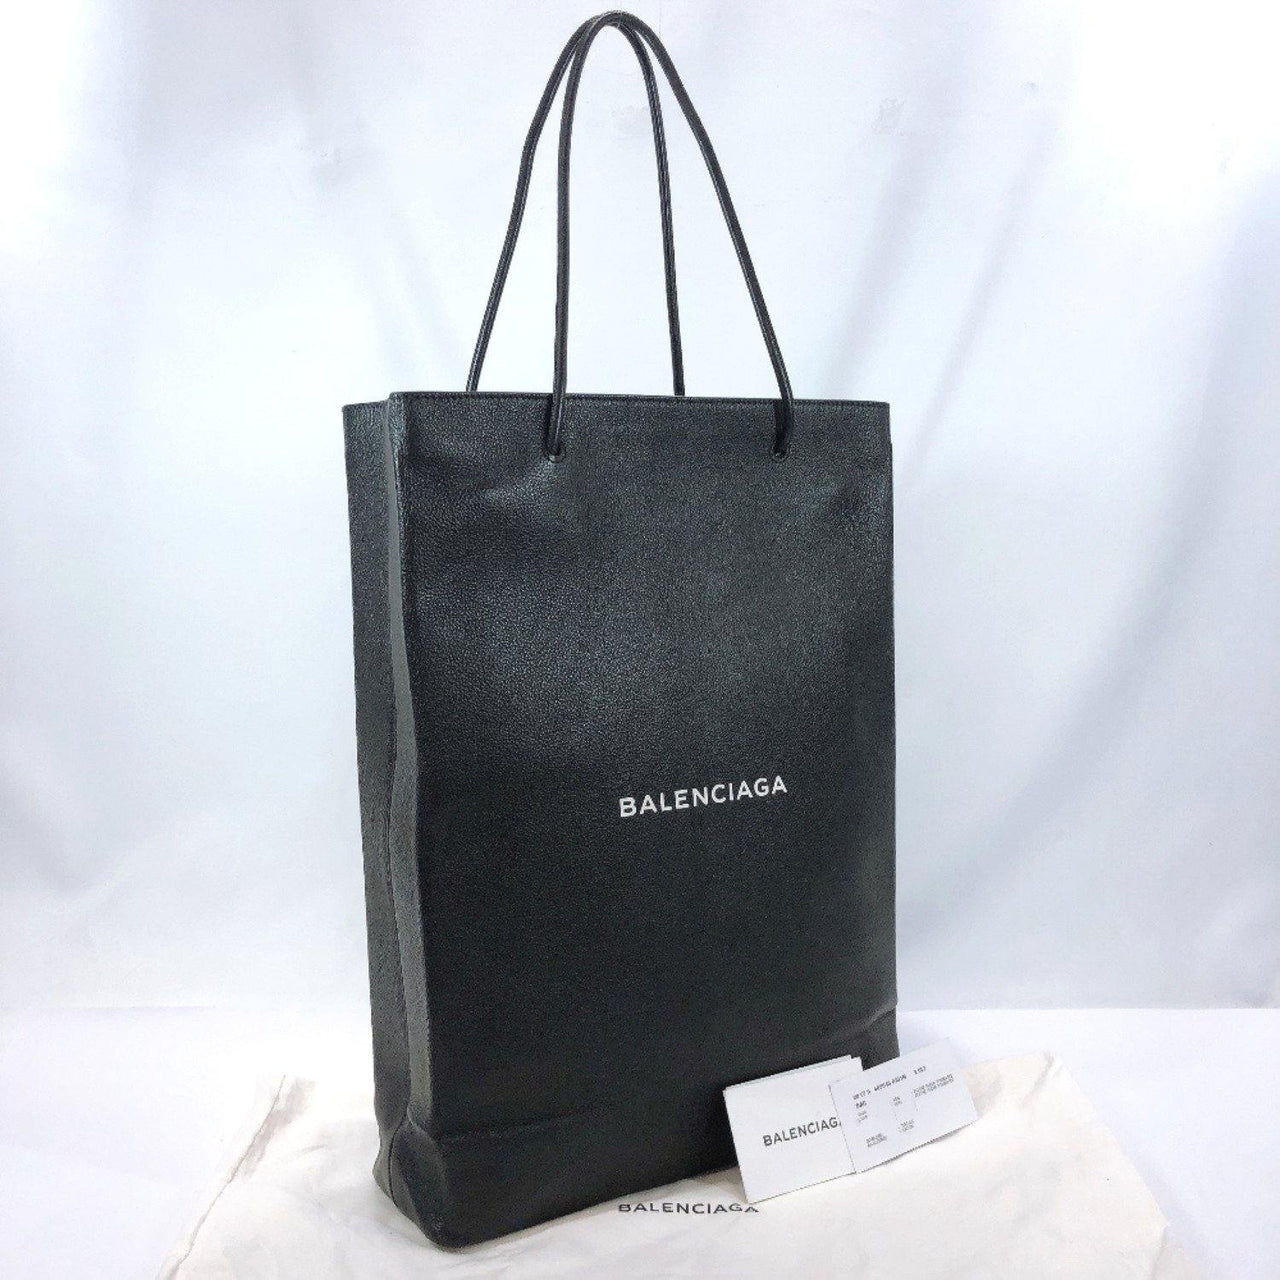 BALENCIAGA Tote Bag 482545 North south shopping bags leather black unisex Used